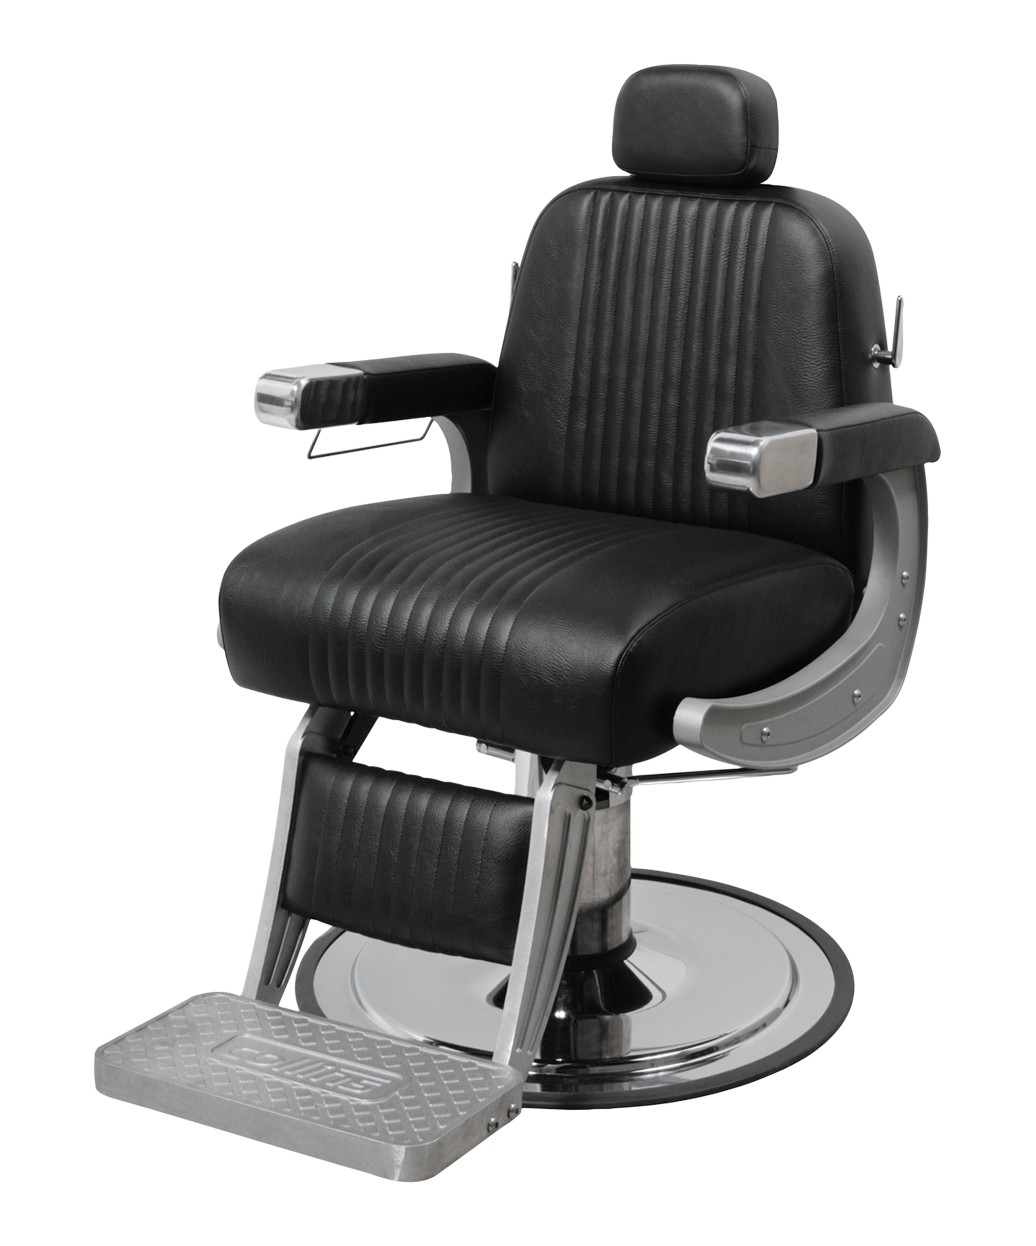 B70 Cobalt Omega Barber Chair, B Series